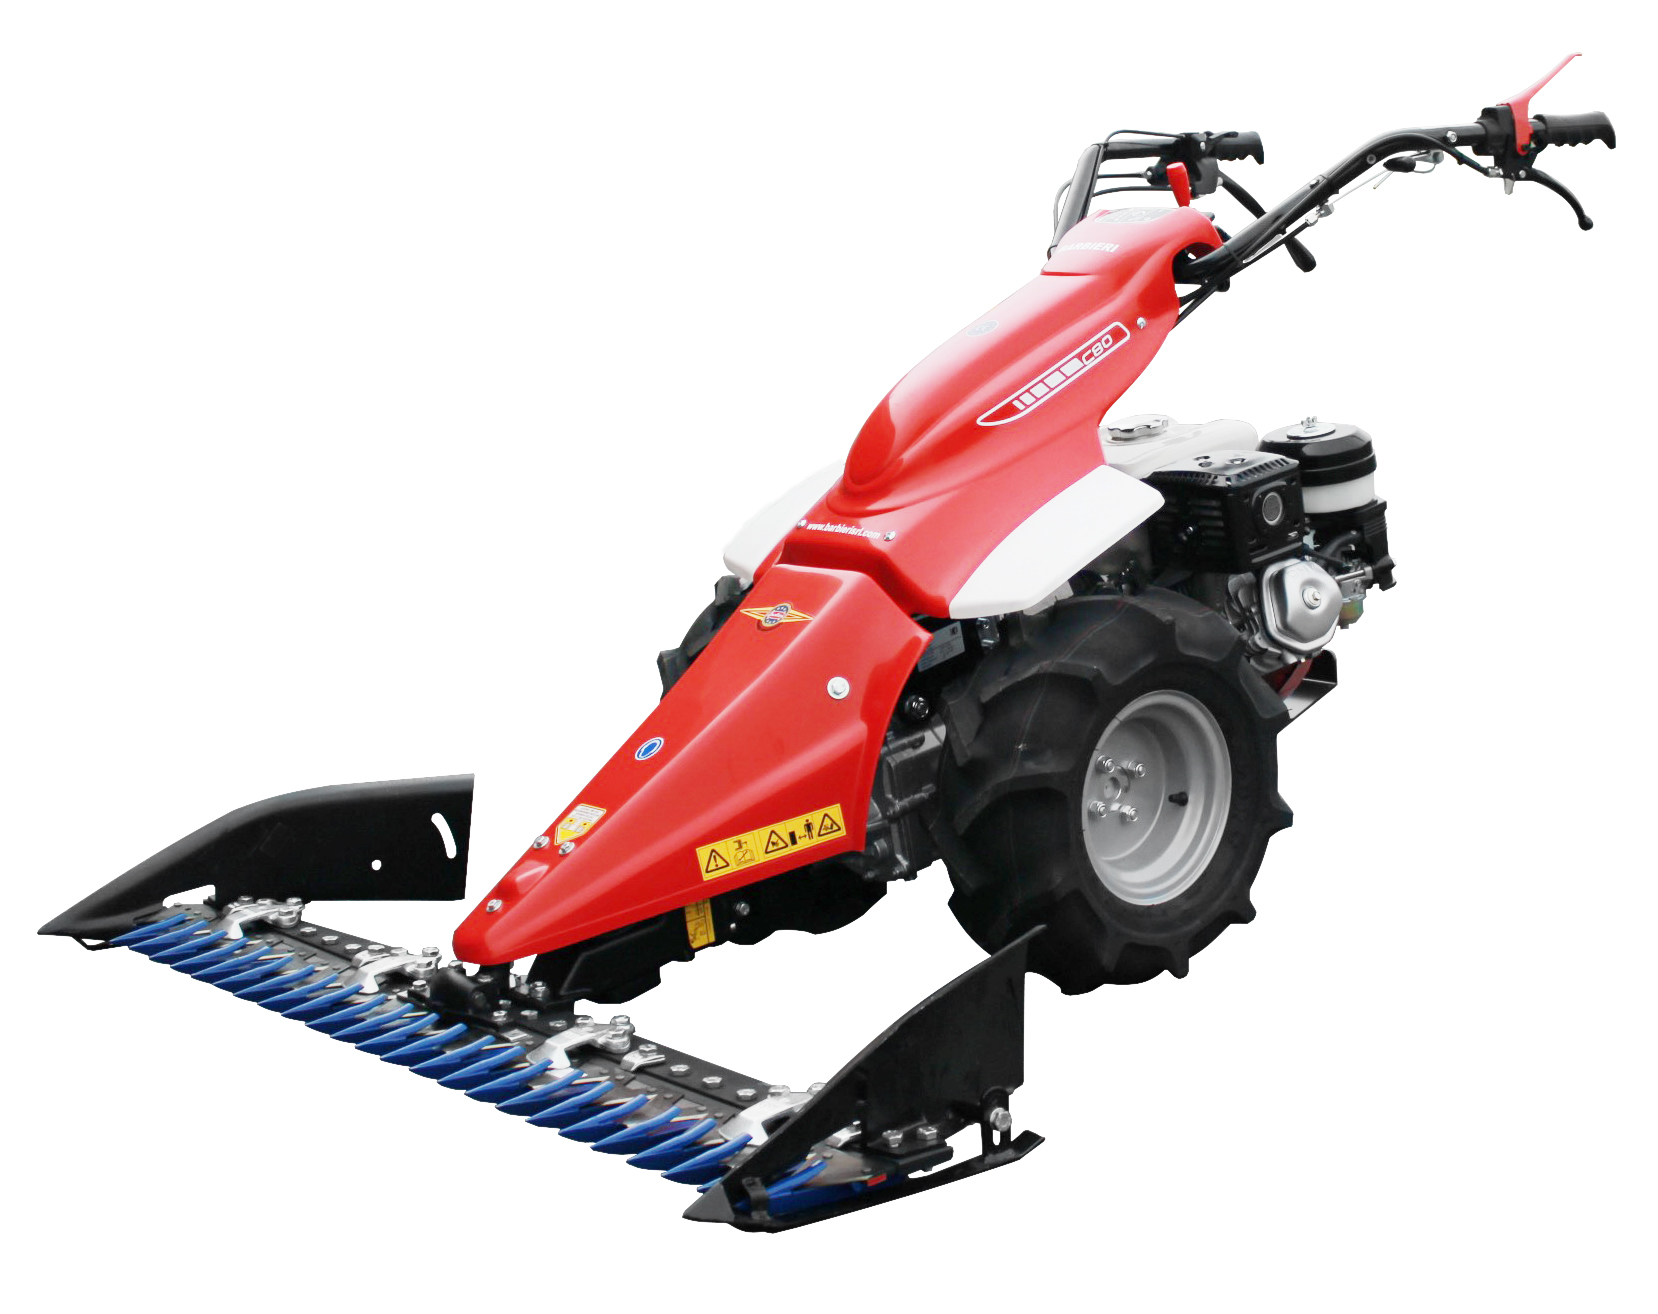 Motor mower C80 ALPINA - Barbieri